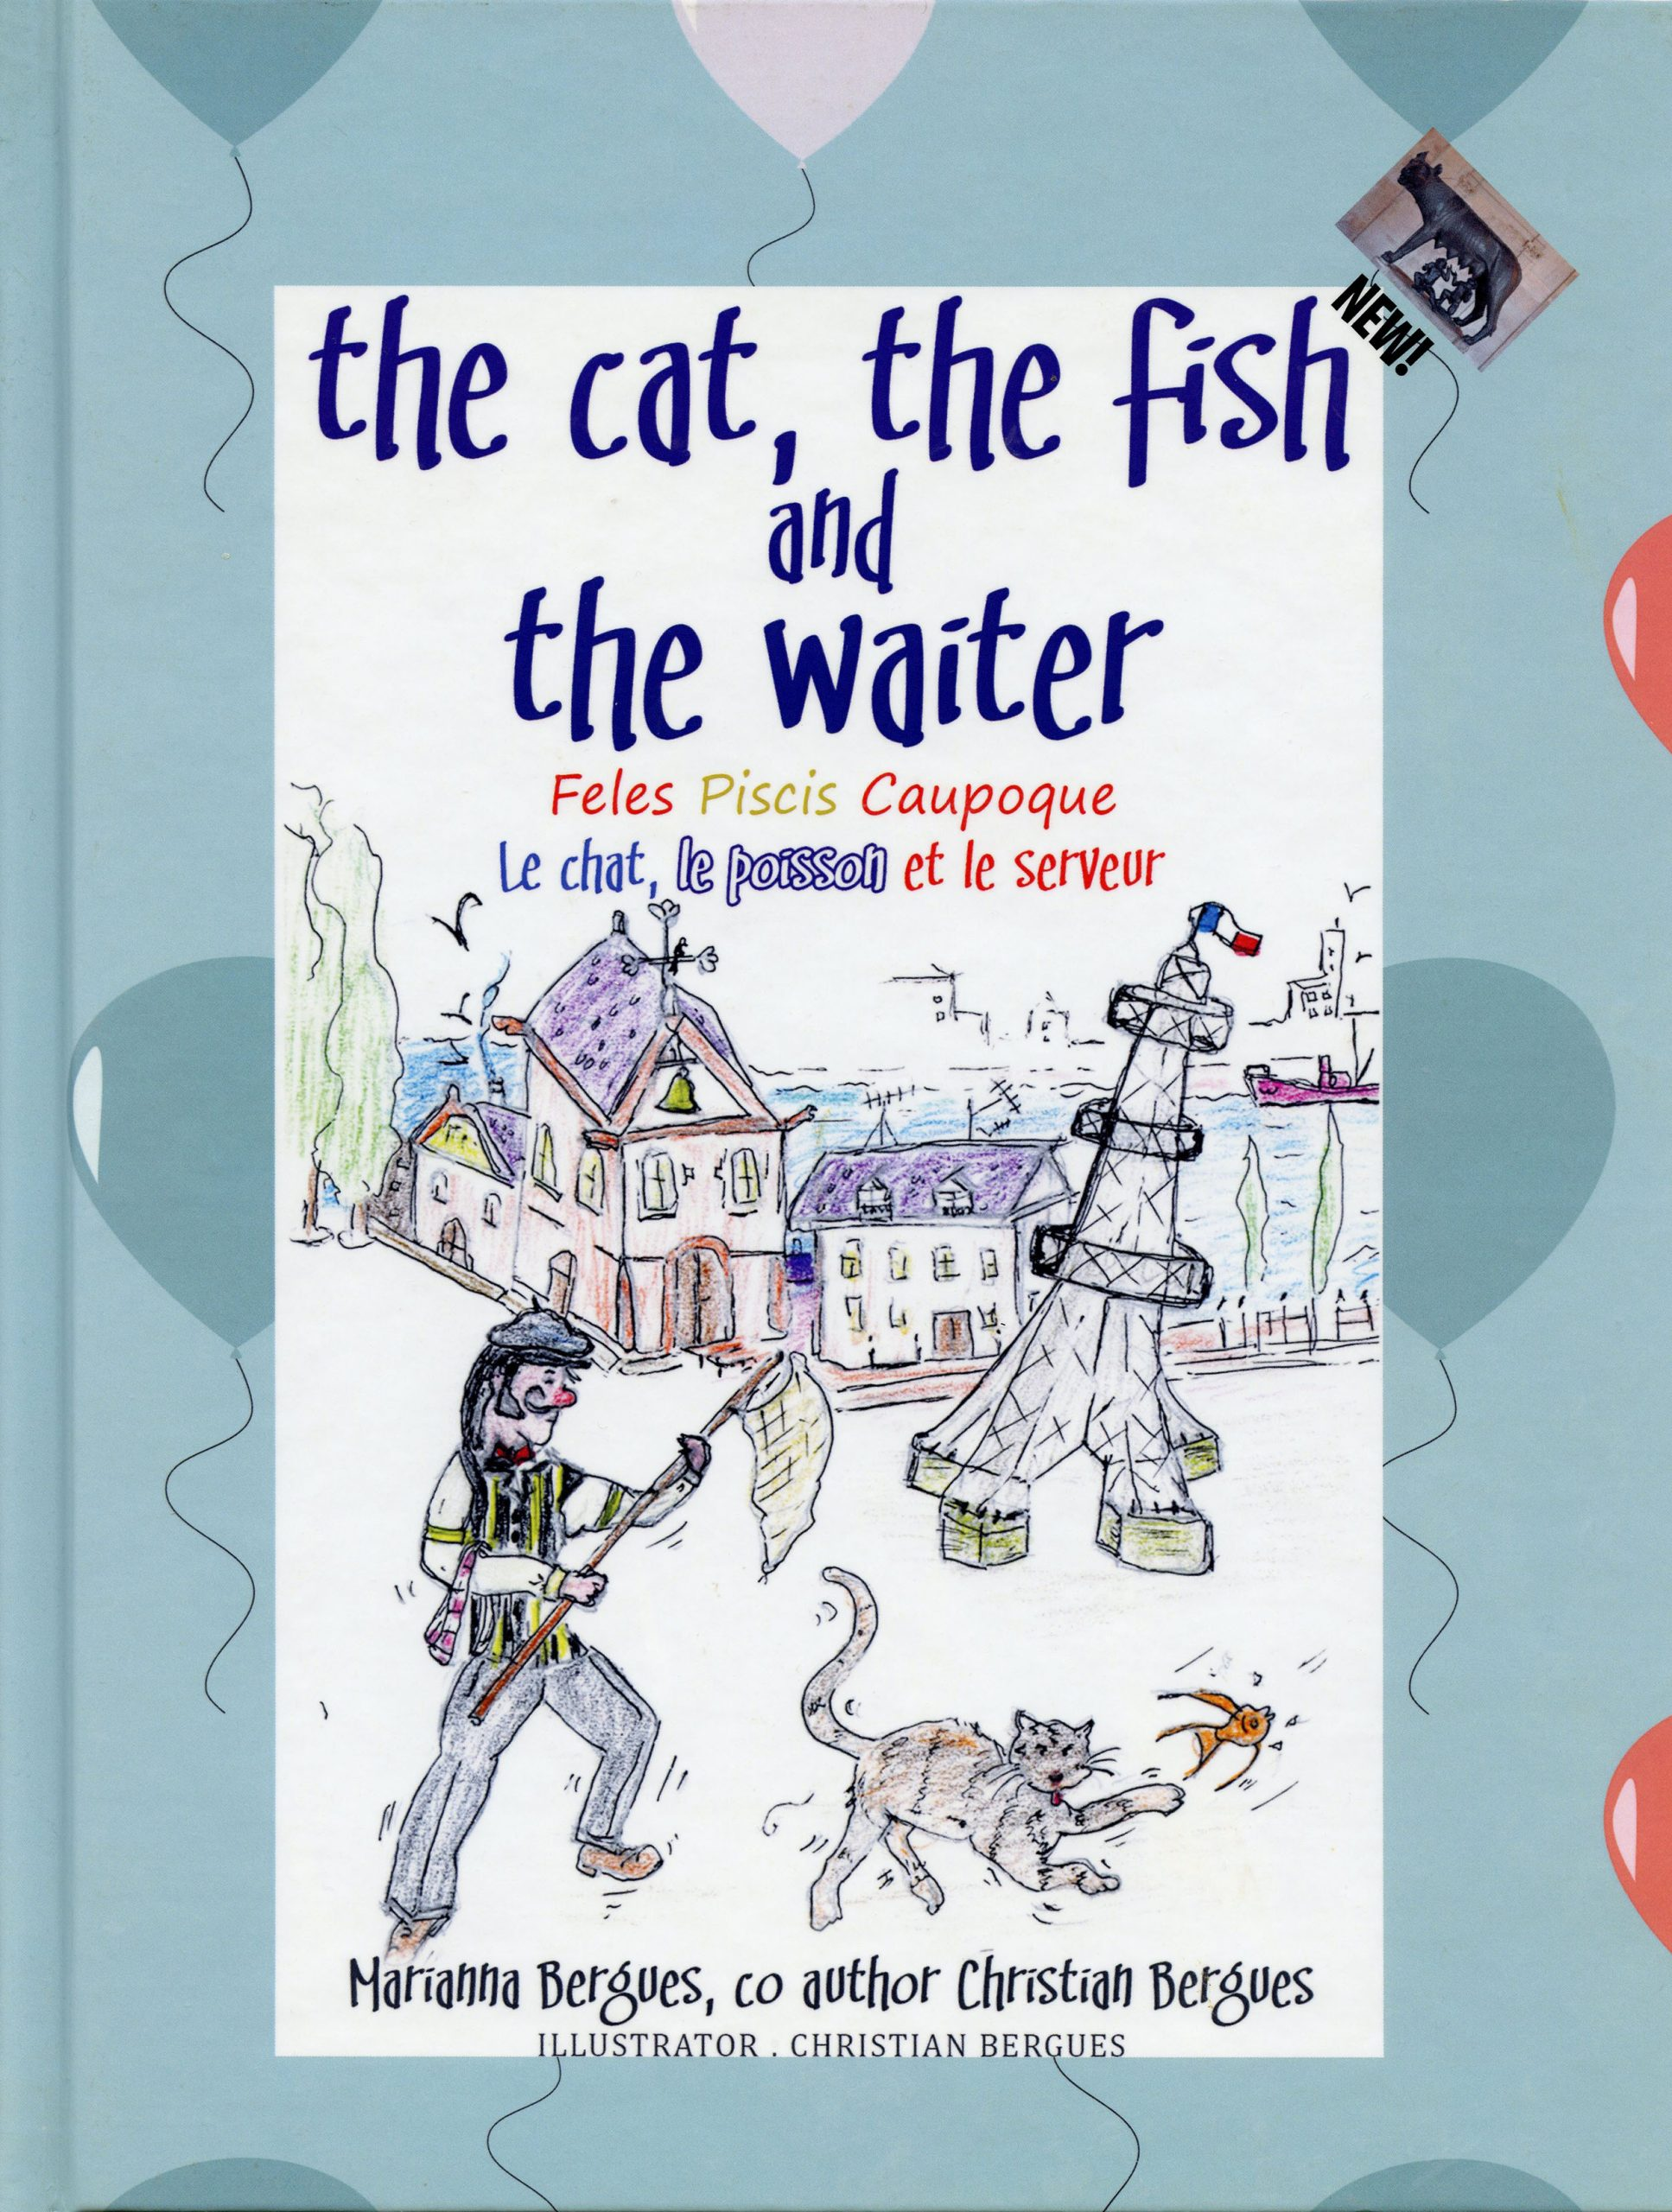 The Cat, the Fish and the Waiter (English, Latin and French Edition) (A Children's Book) old